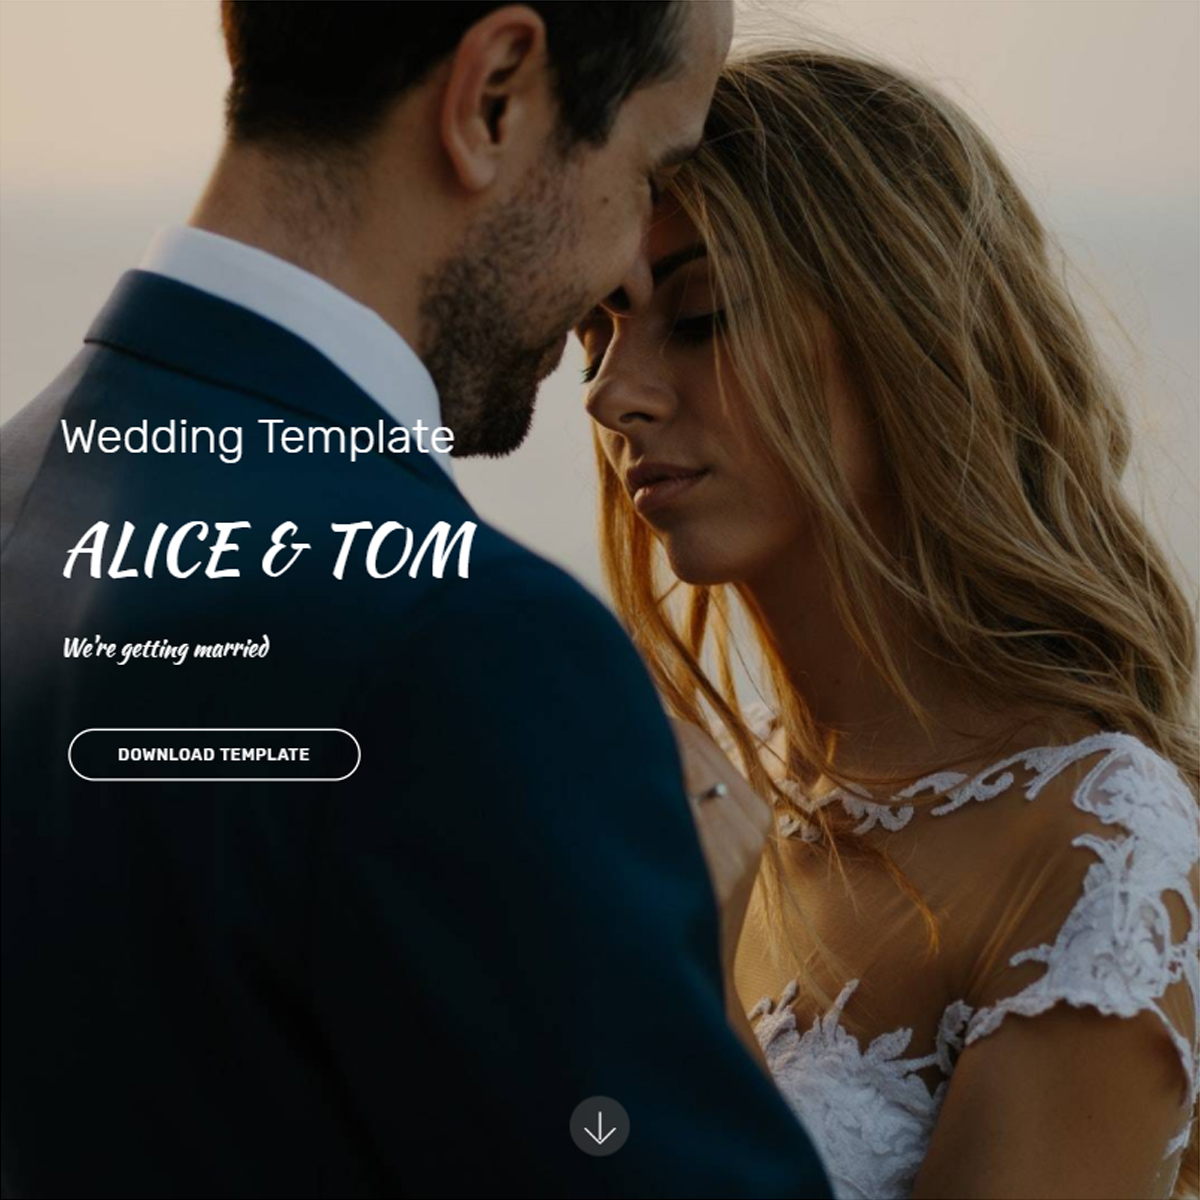 Responsive Bootstrap Wedding Templates